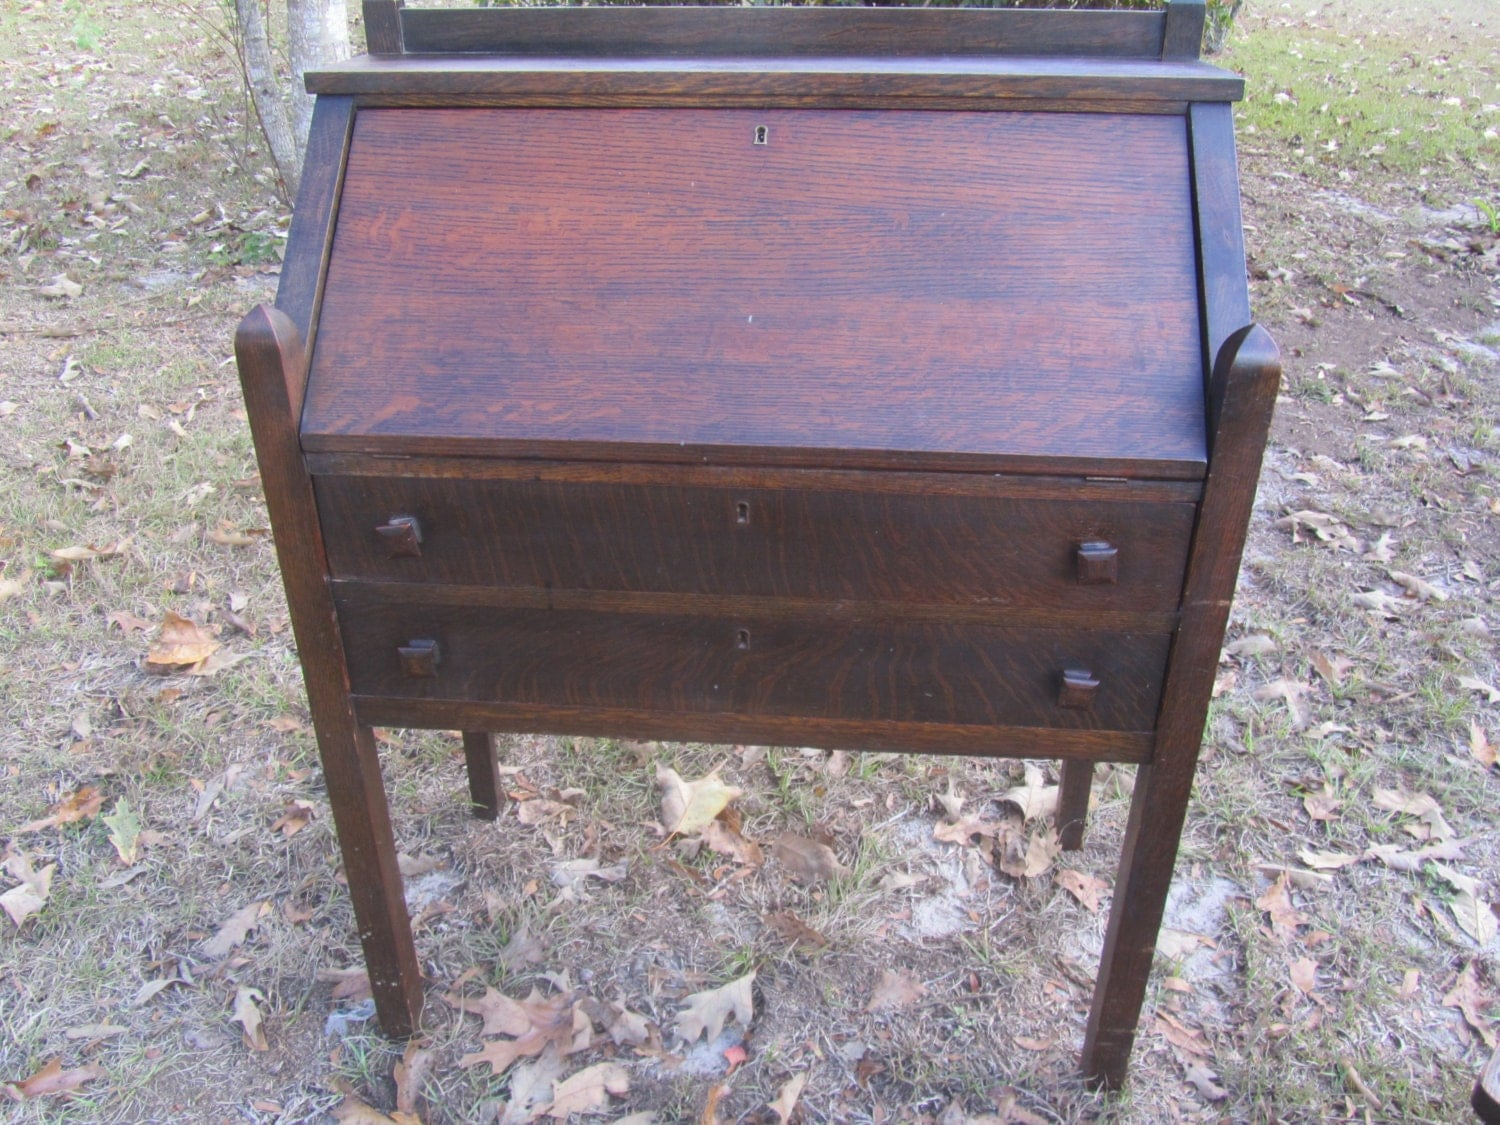 Description. Antique mission style secretary desk ... - Antique Mission Style Secretary Desk And Chair Slant Top